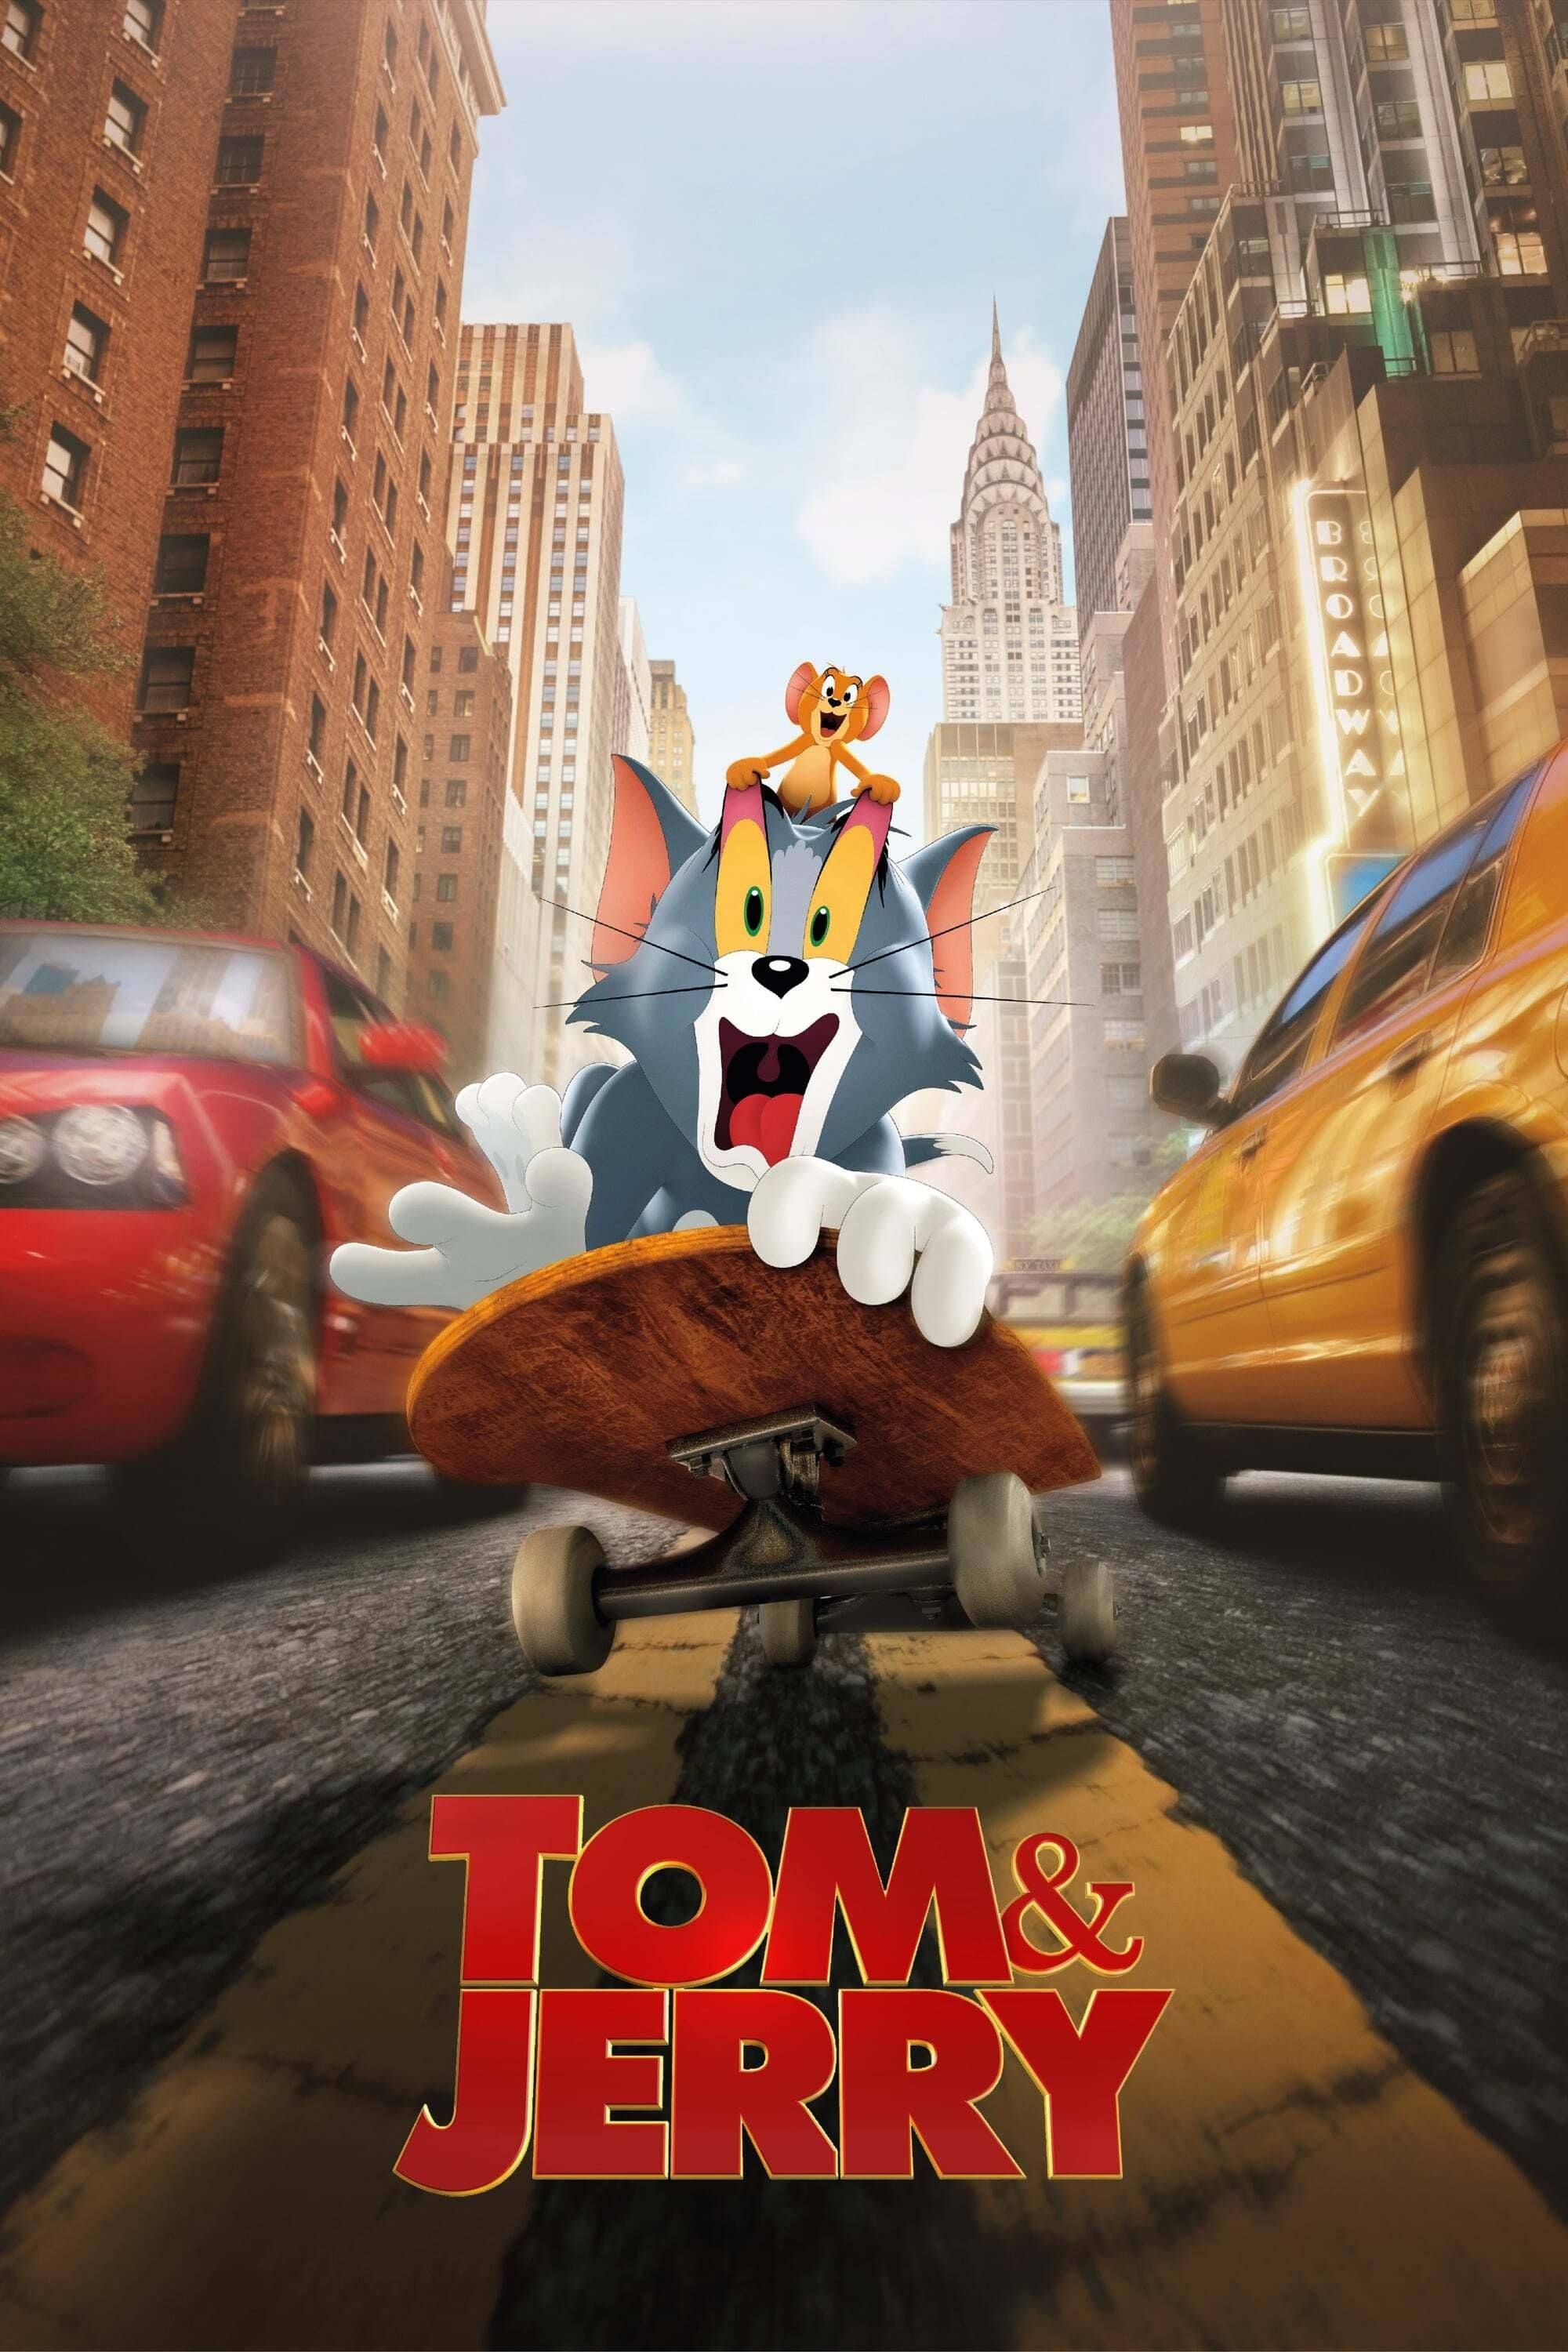 image for Tom & Jerry